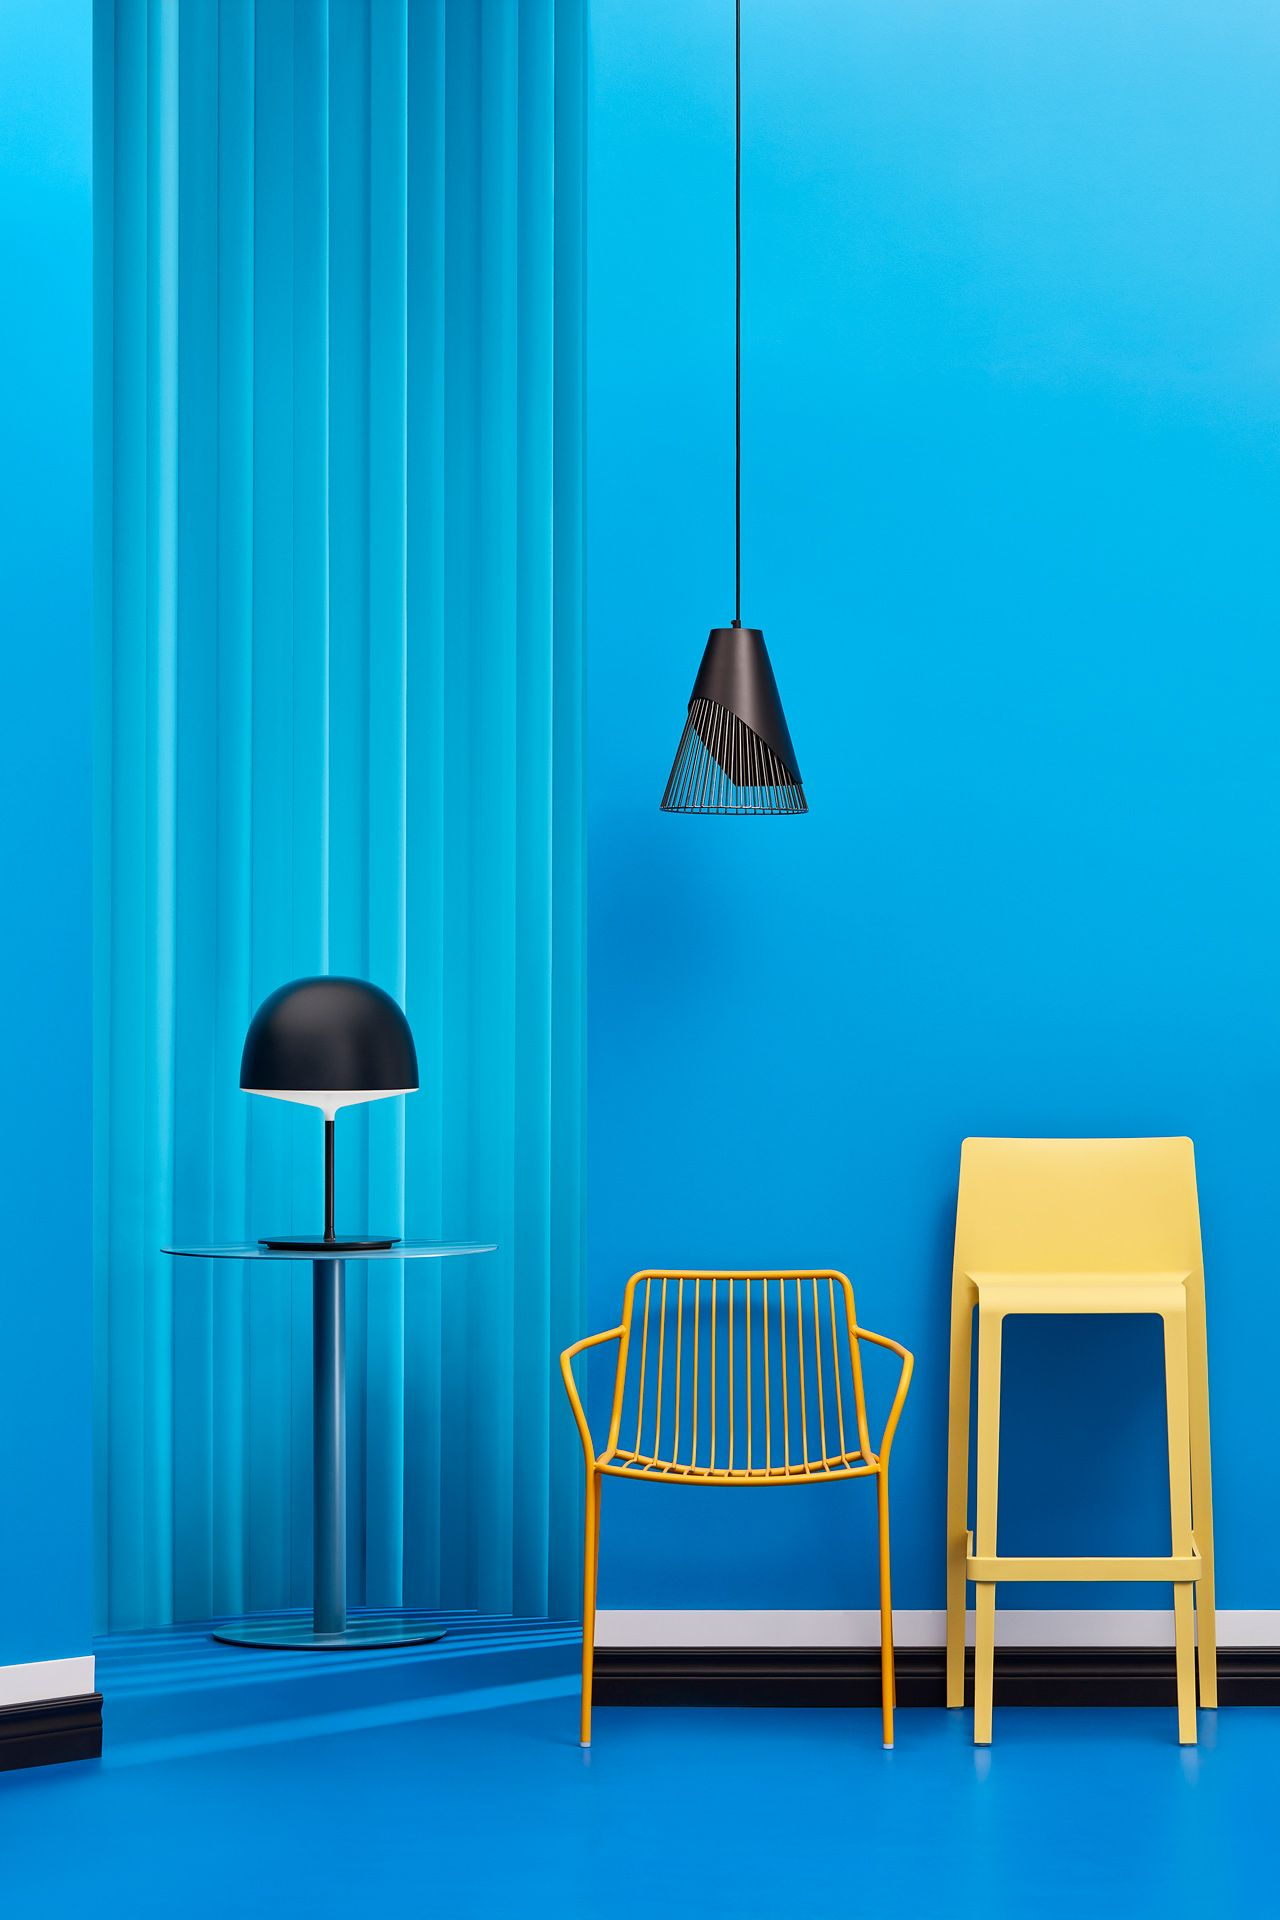 interior design with blue theme with yellow high chair by Mathieu Levesque